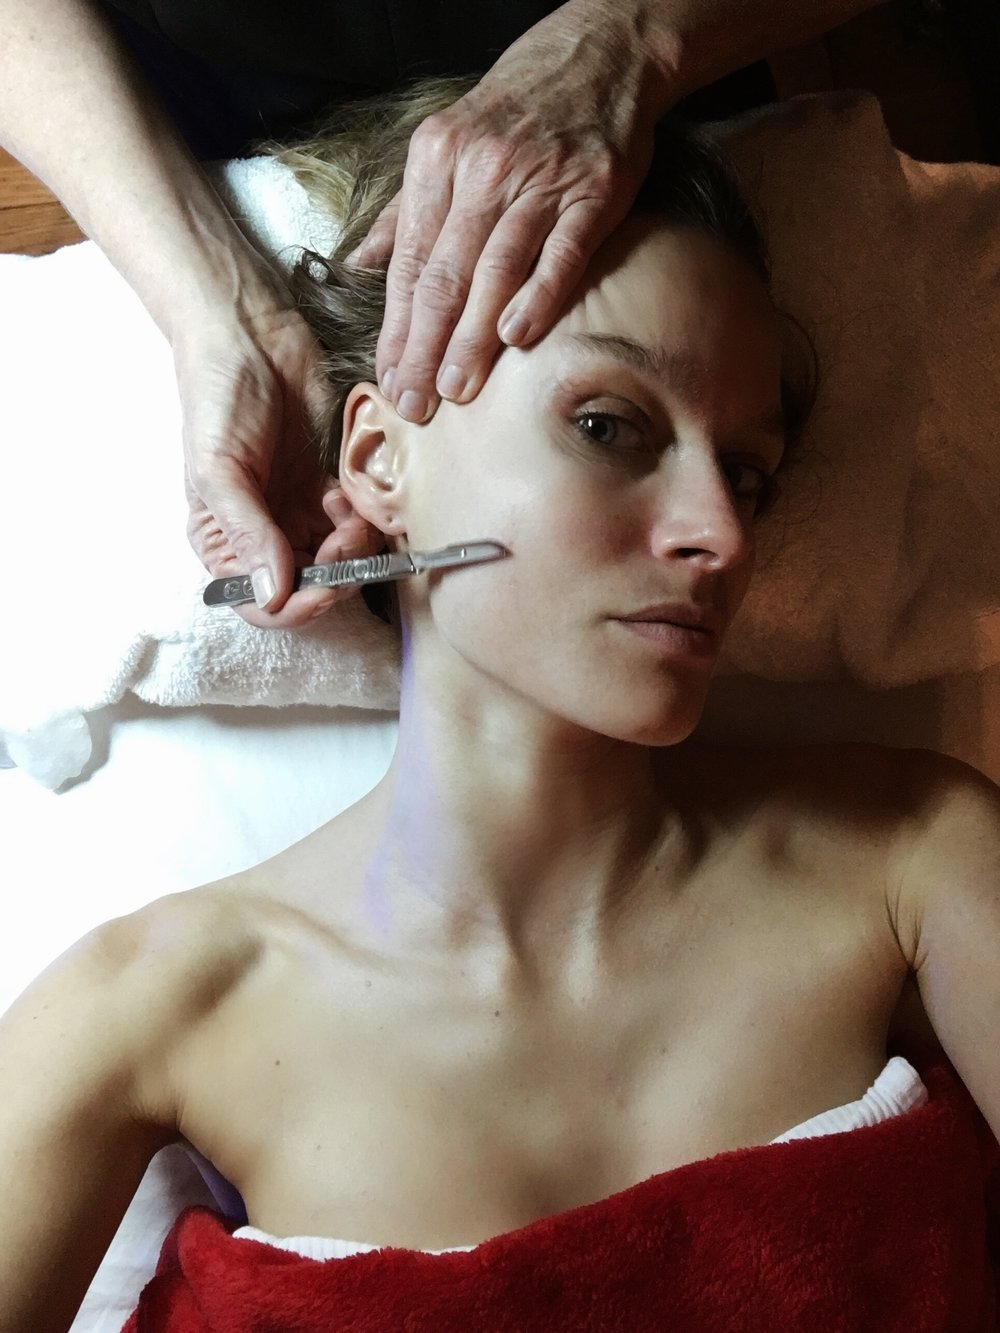 Dermaplaning - Just for demonstration: 'Dermaplaning' which is an effective exfoliating treatment in which a doctor or aesthetician uses a surgical scalpel to gently scrape off any dead skin cells on the surface of your skin